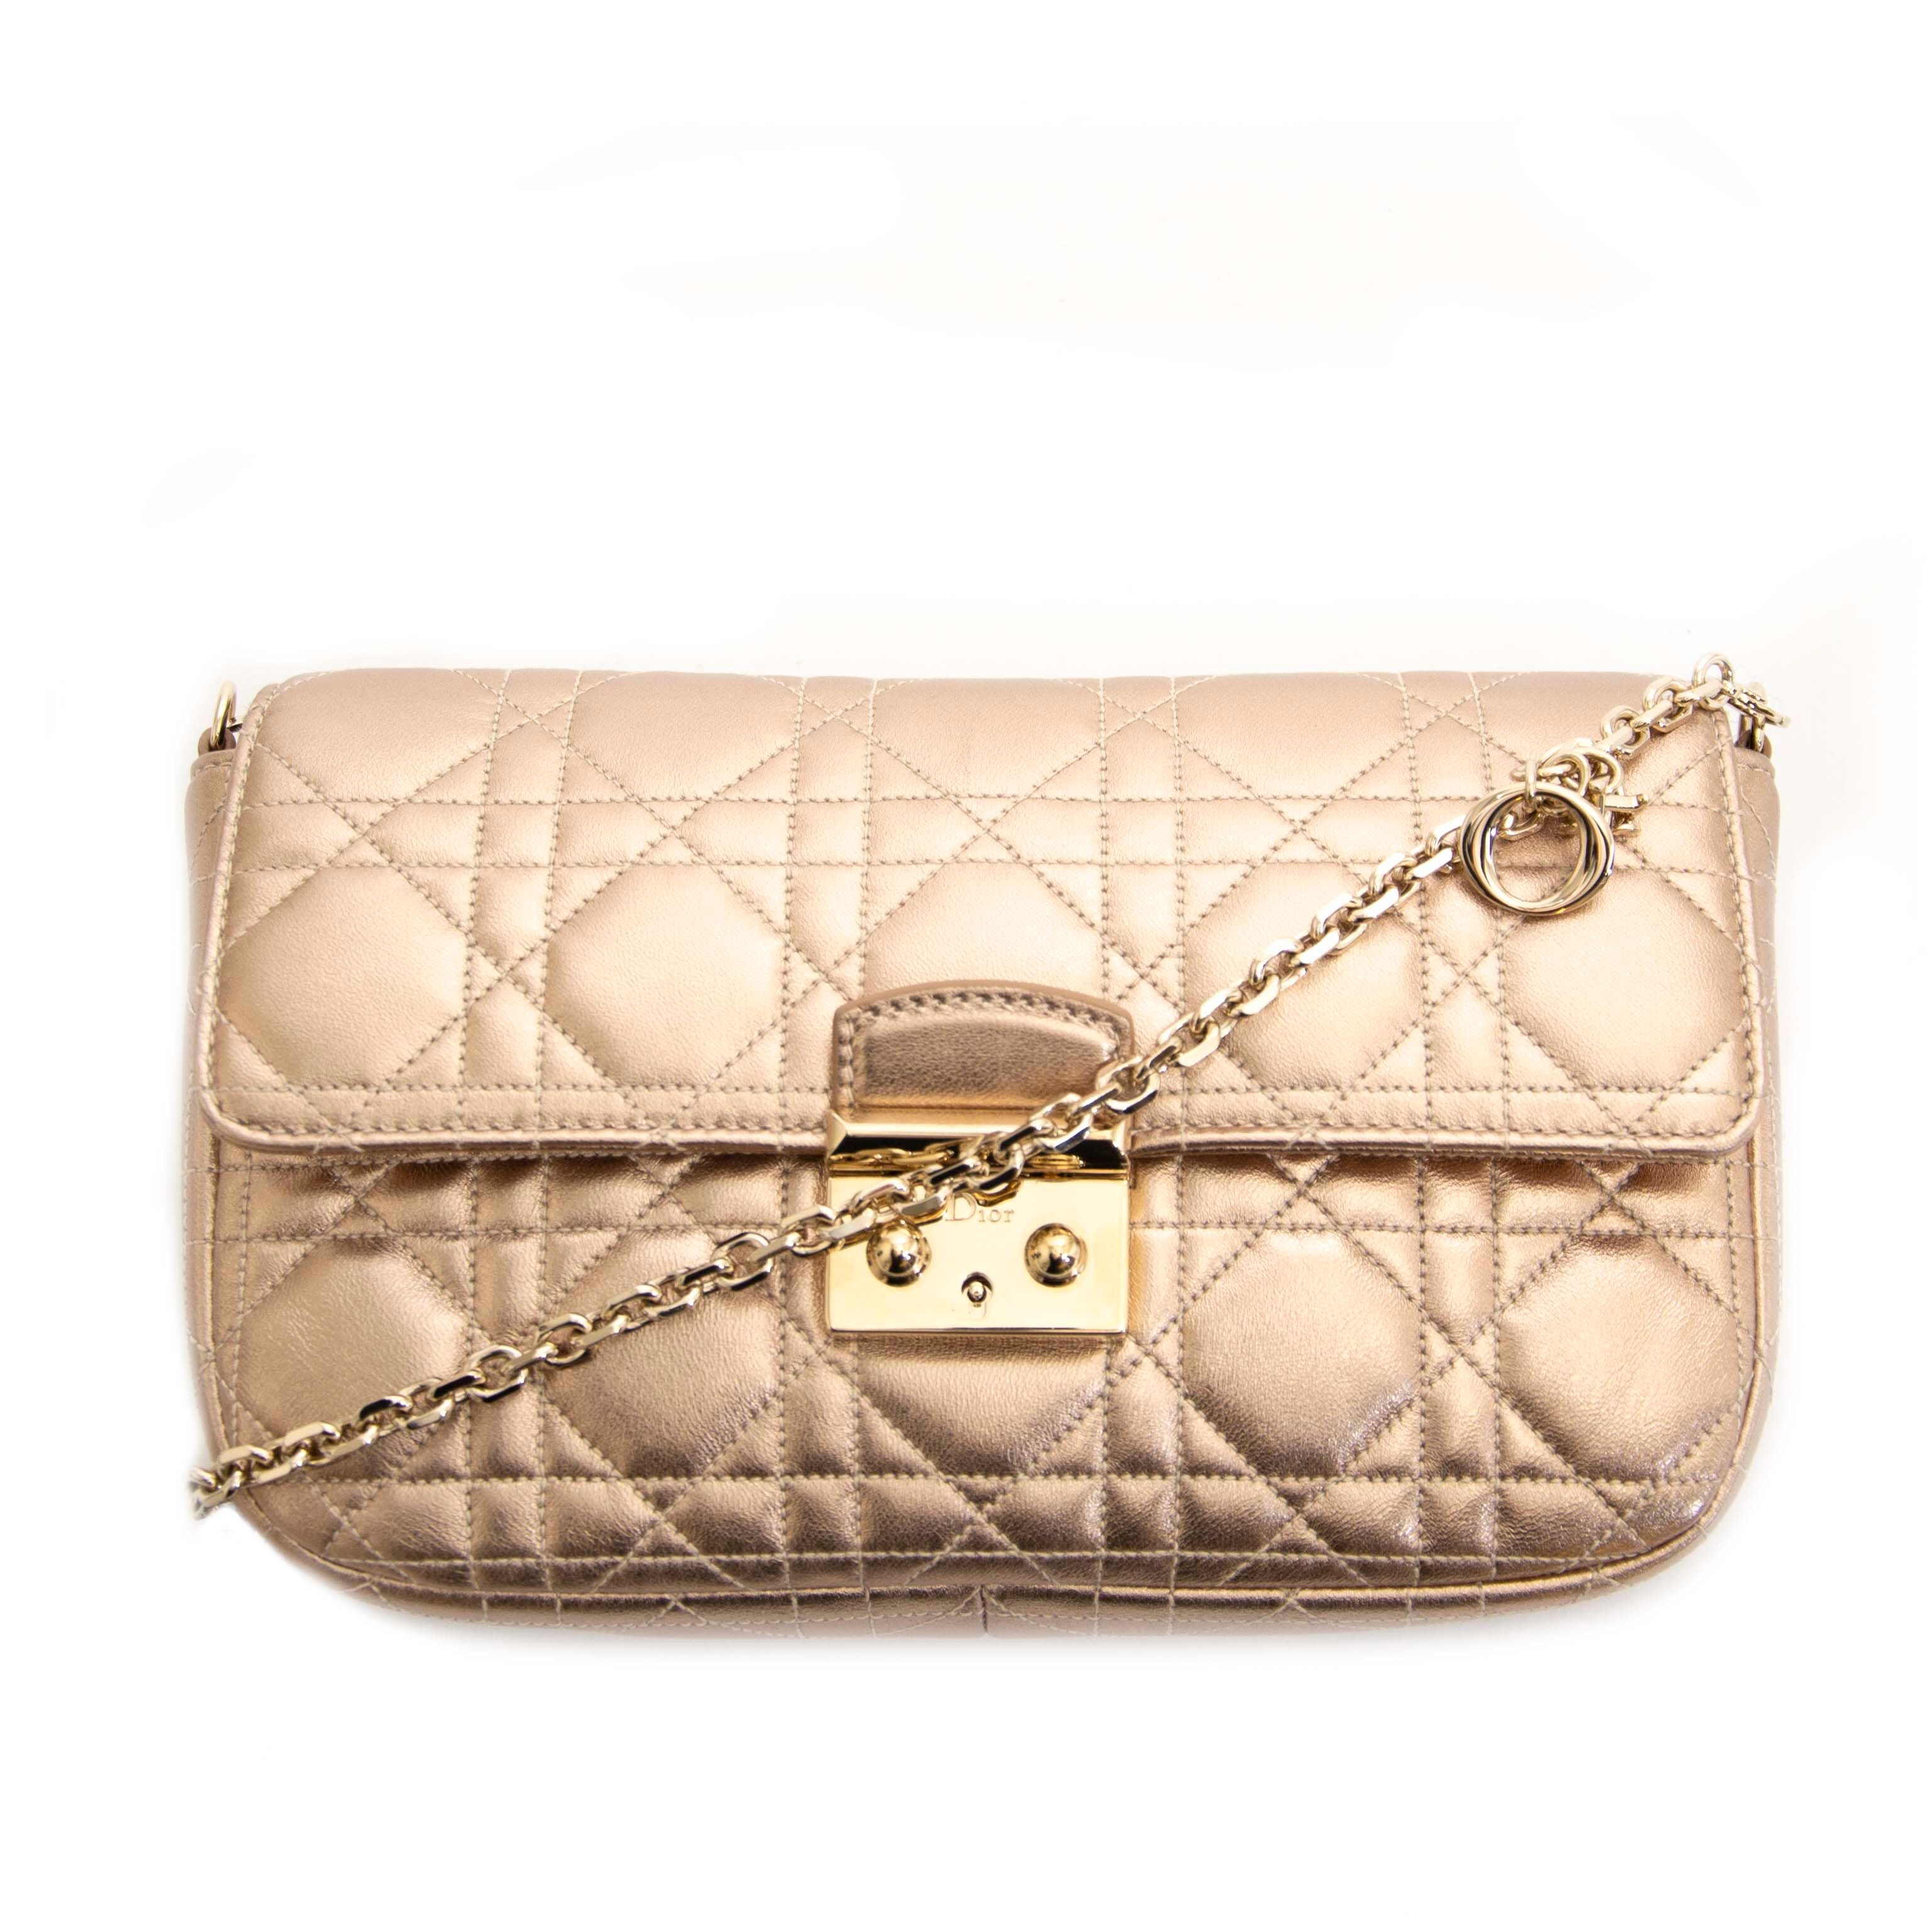 Buy secondhand Dior bags at Labellov.